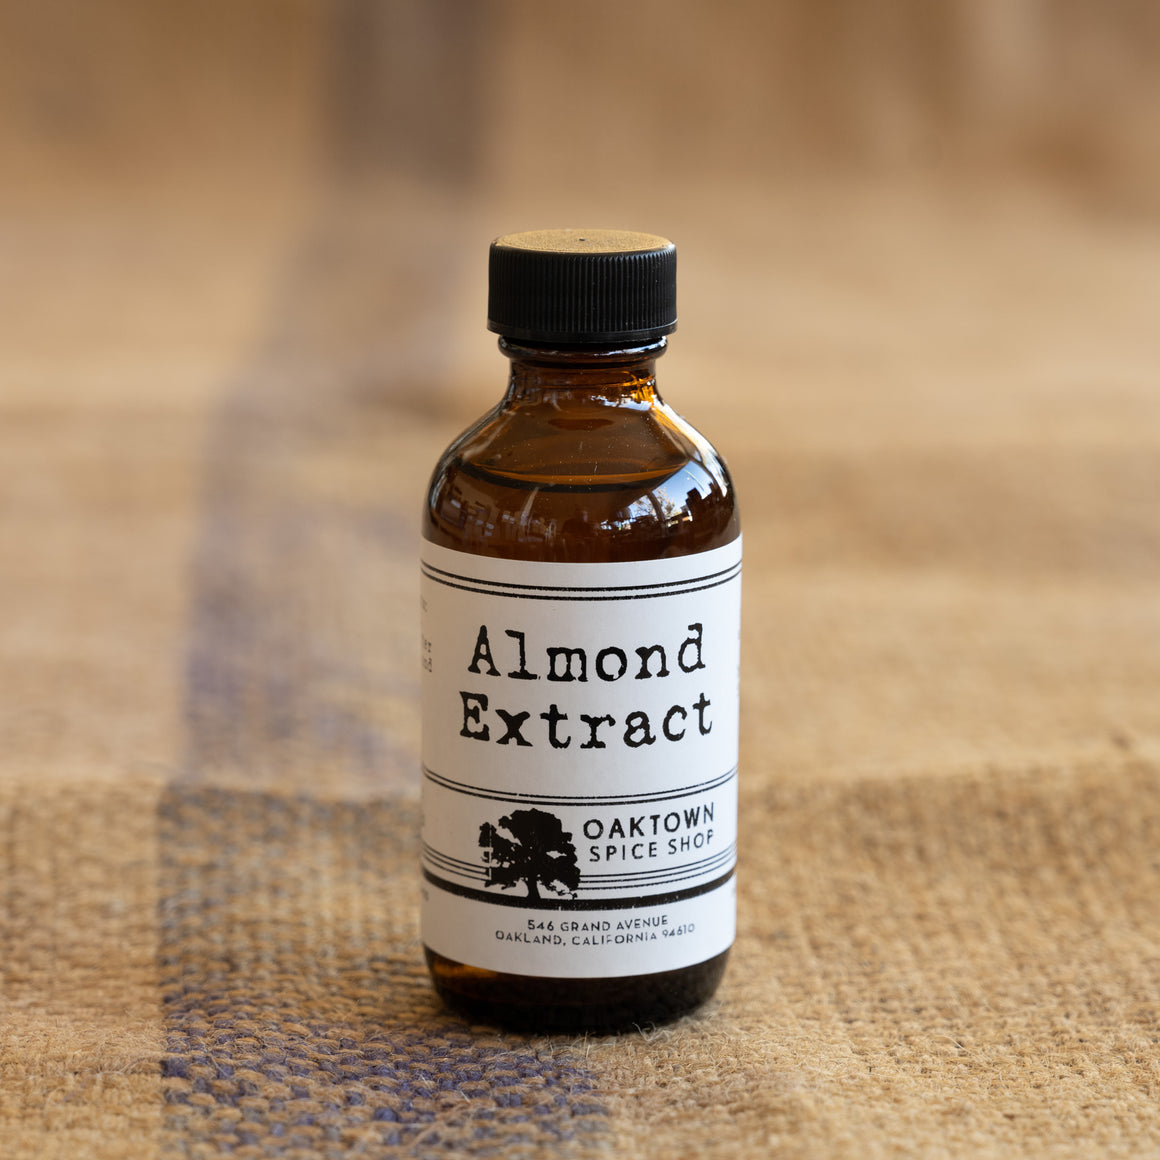 Almond Extract (Pickup Only)